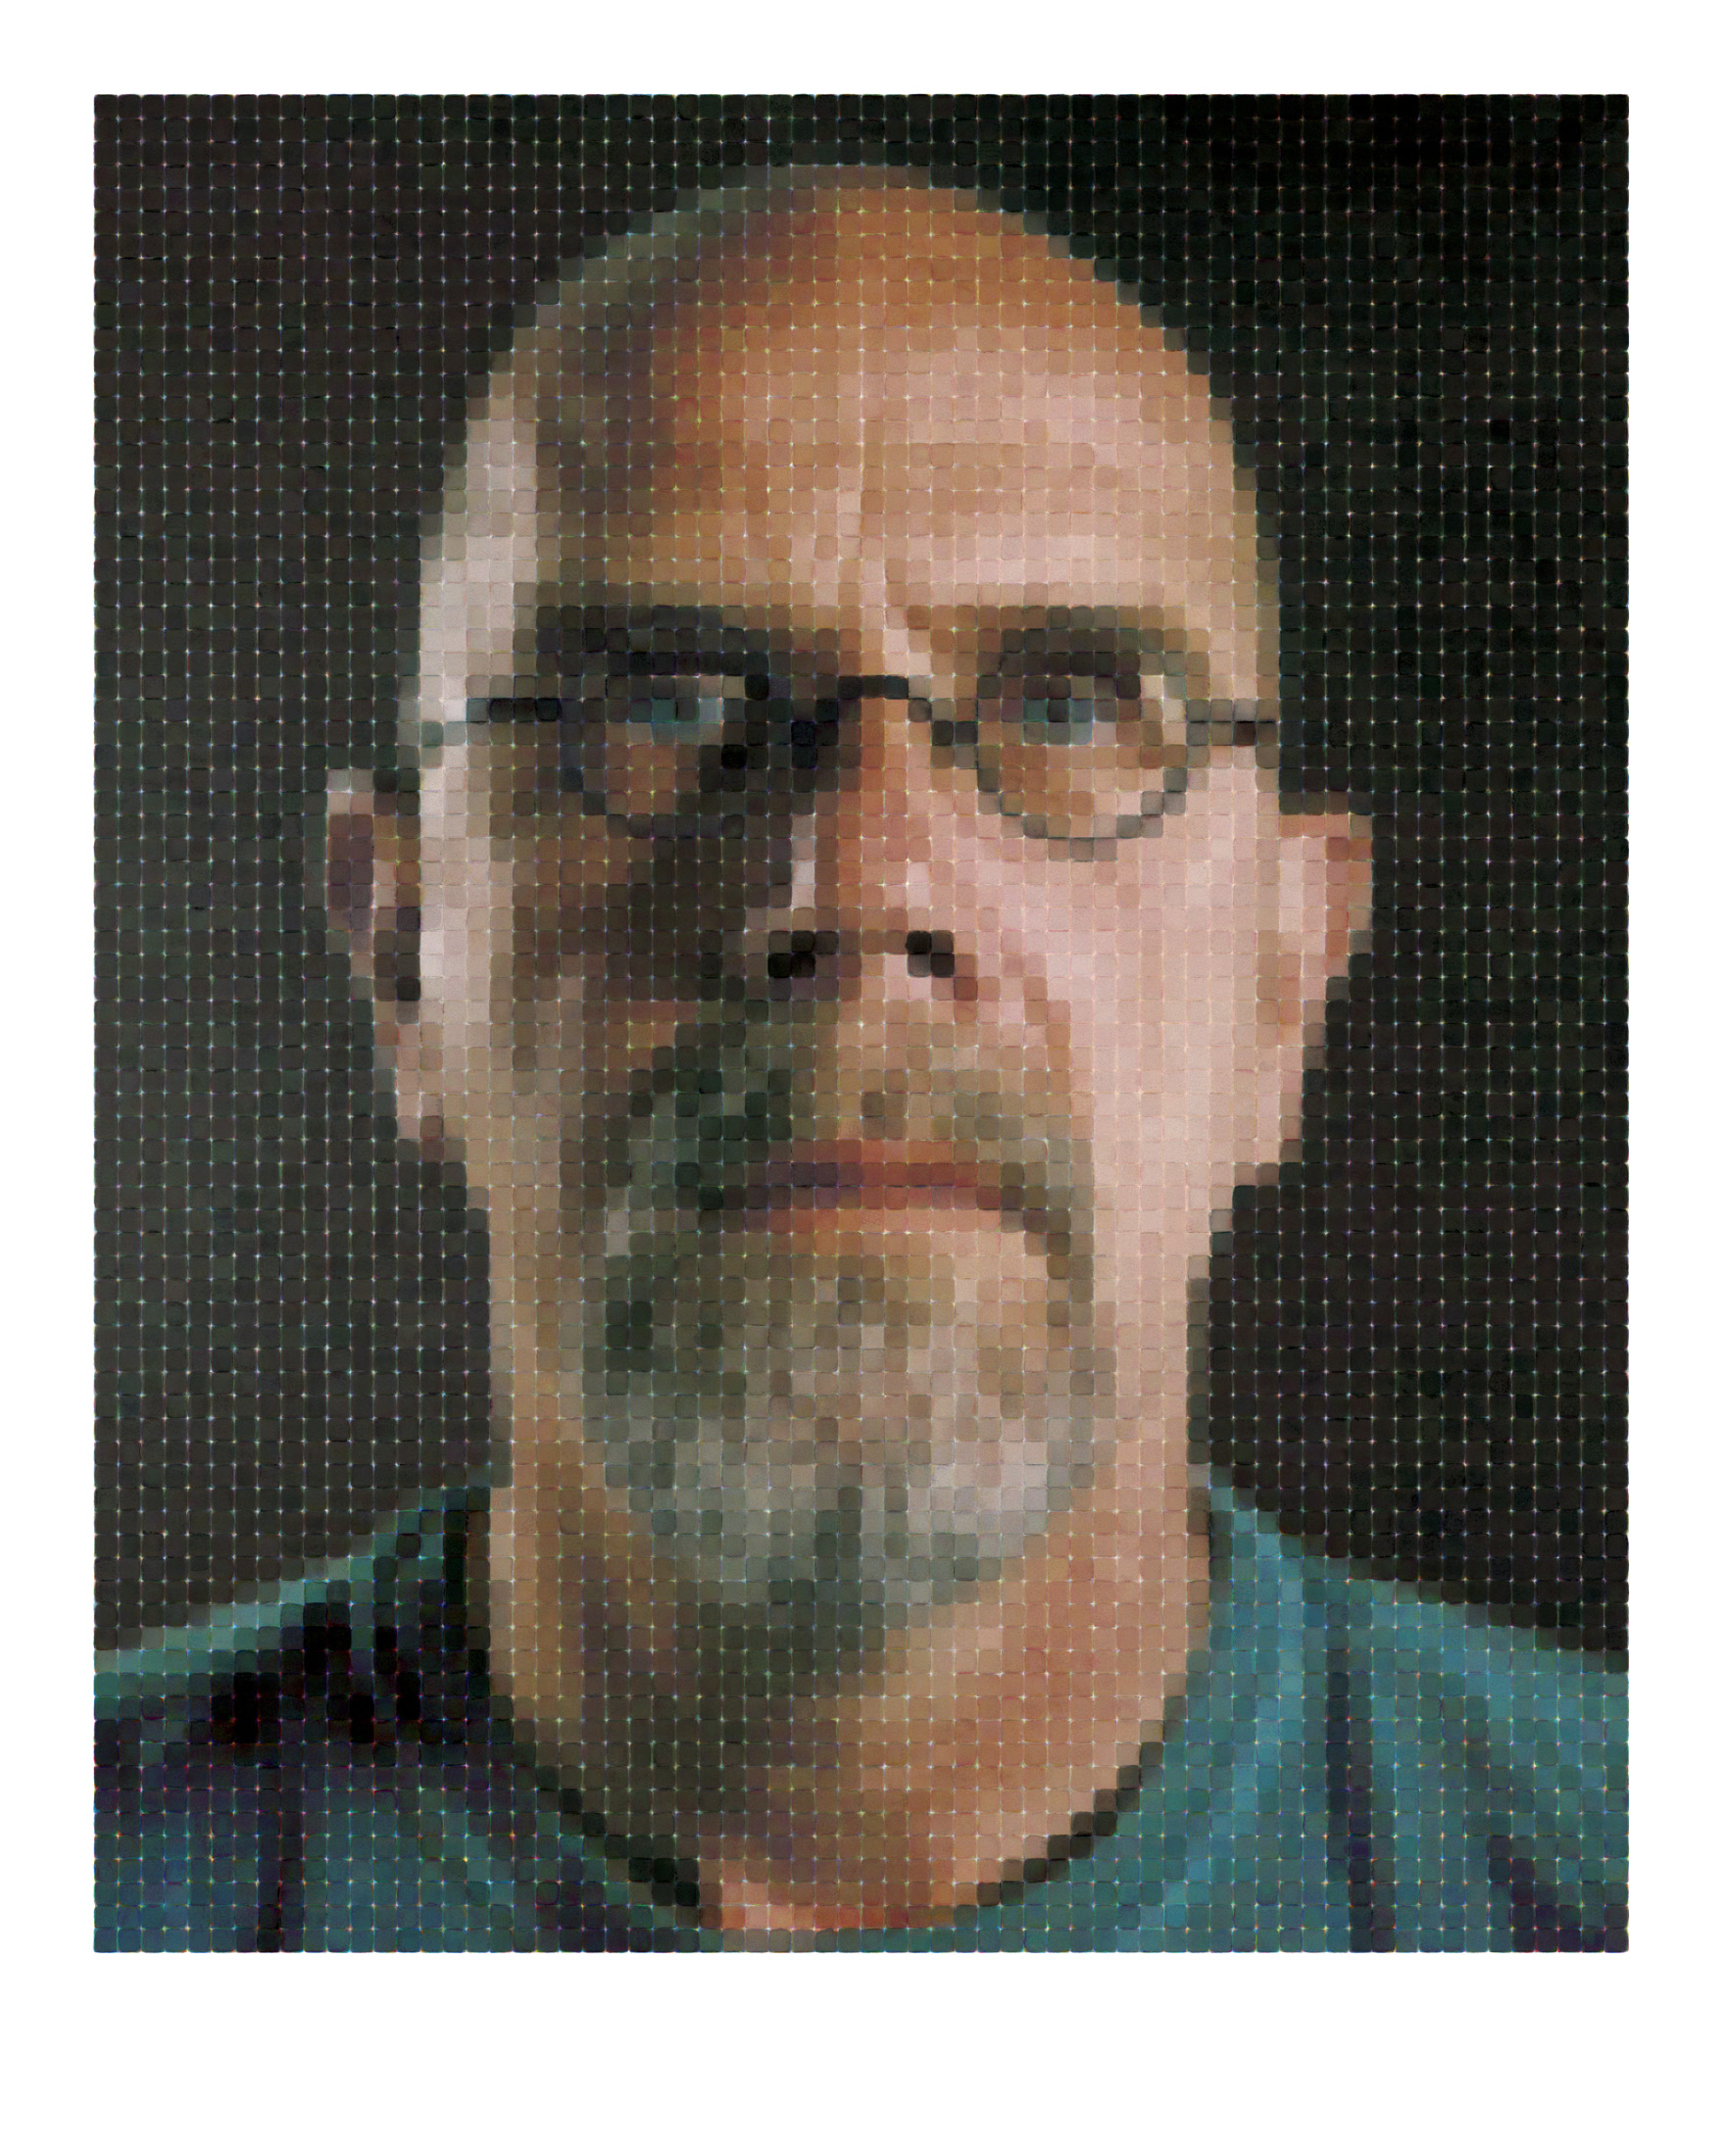 Chuck close self portrait 2012 archival watercolor pigment print 90 on hahnemühle rag paper state i 75 x 60 in state ii 80 x 66 in